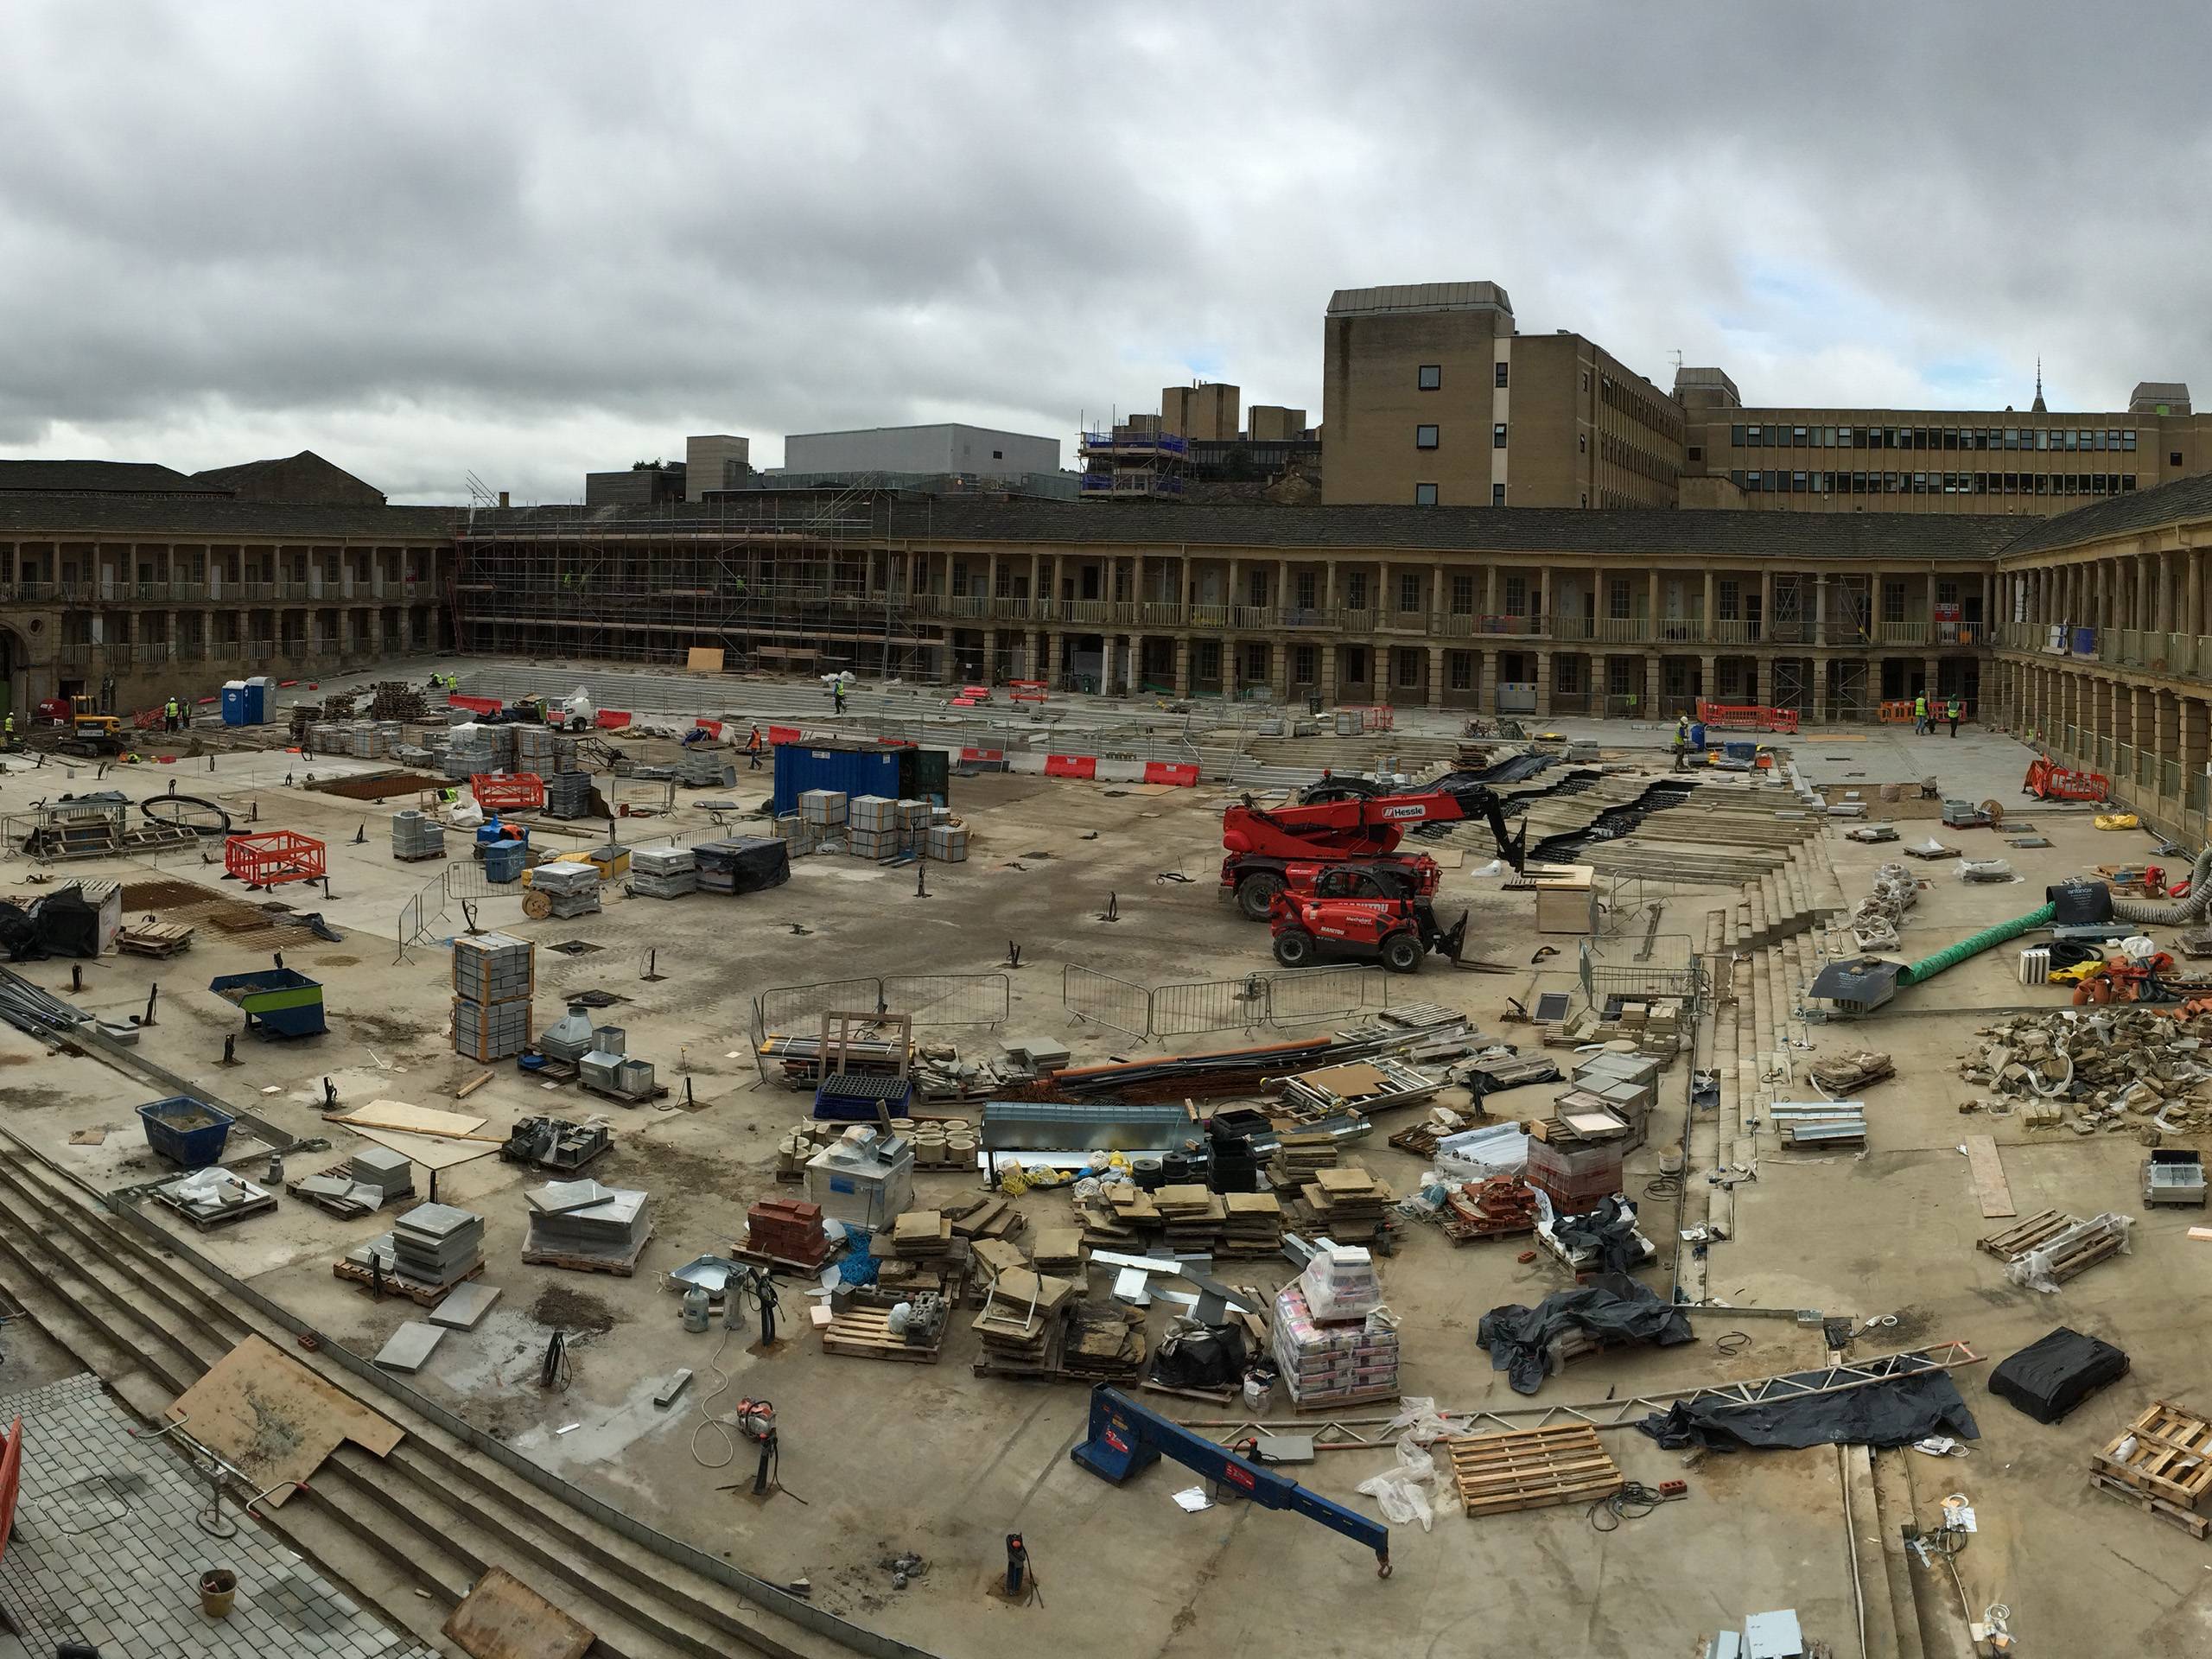 Stone Edge Piece Hall Scale of Project